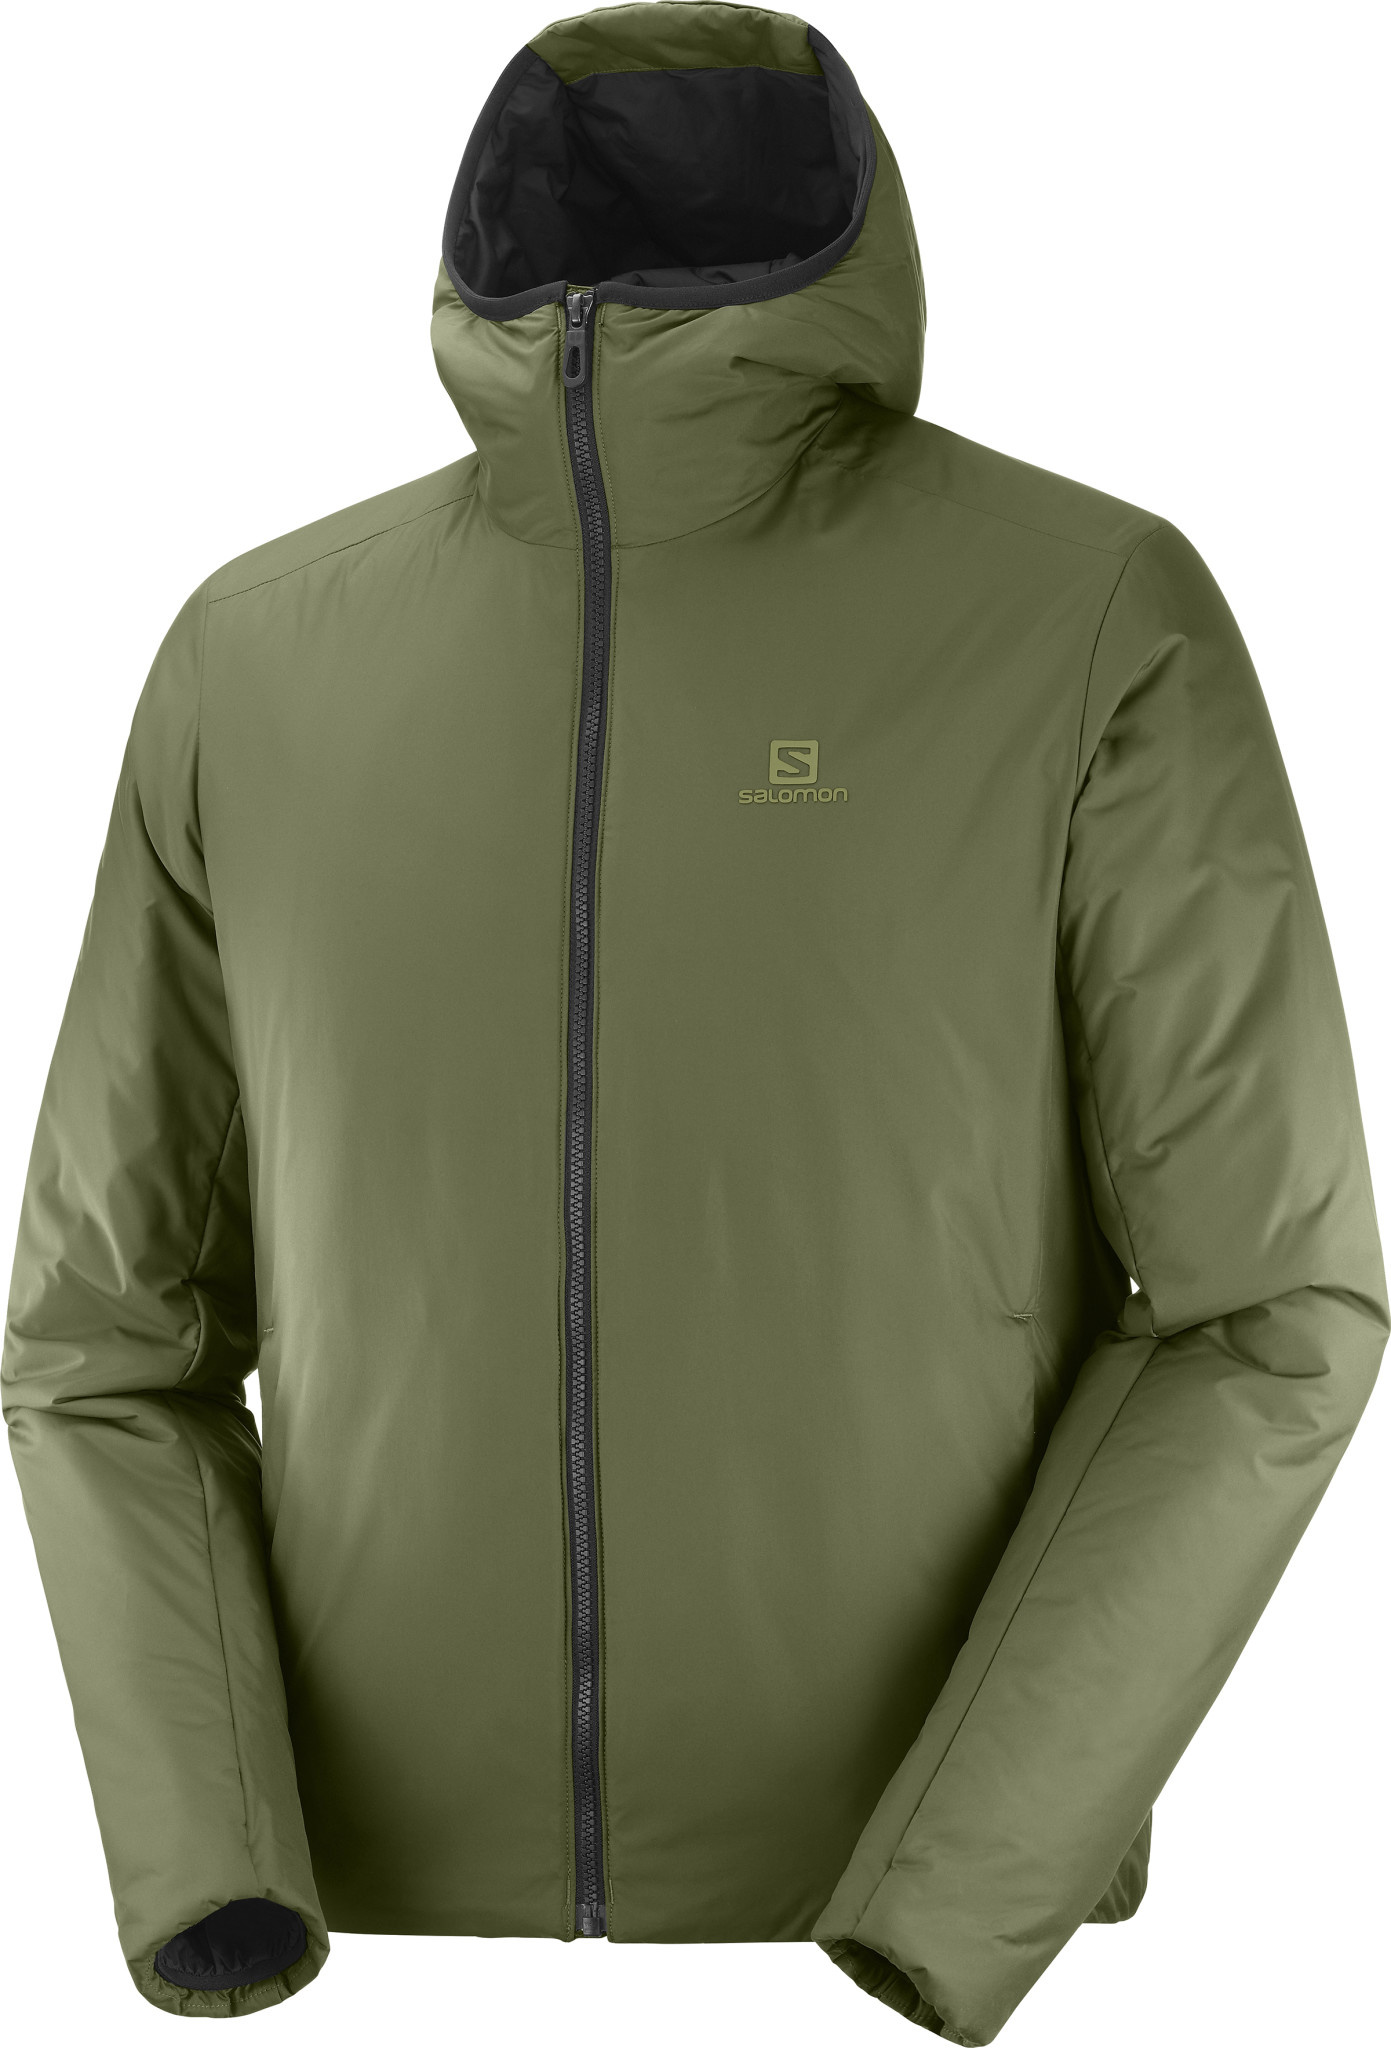 OUTRACK INSULATED HOODIE M-8